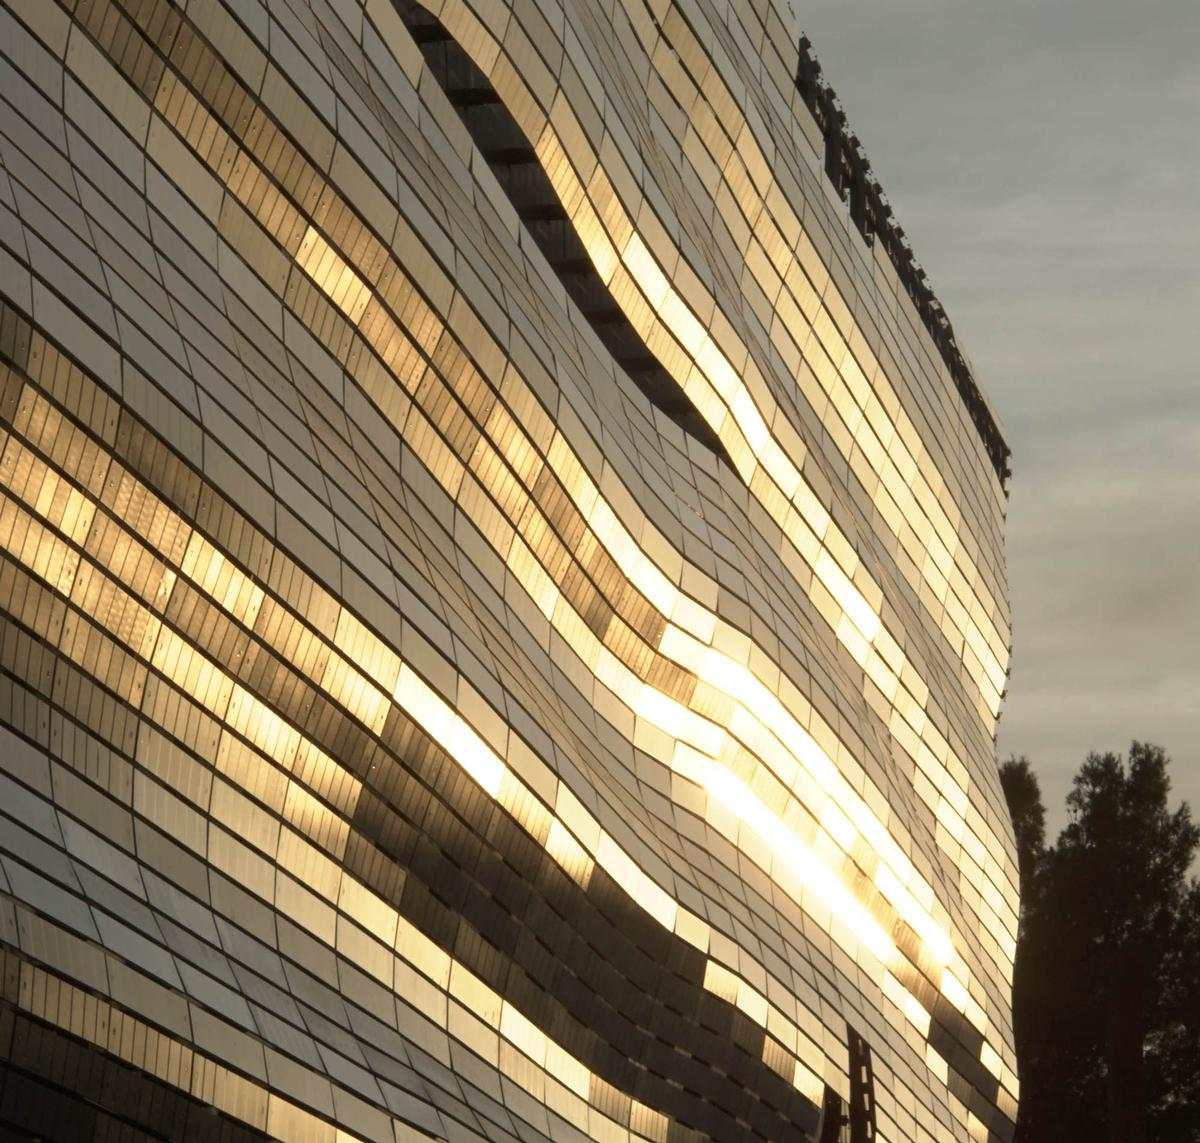 The museum has been built to anchor the city's cultural expansion; attracting tourists from home and abroad / Serge Urvoy